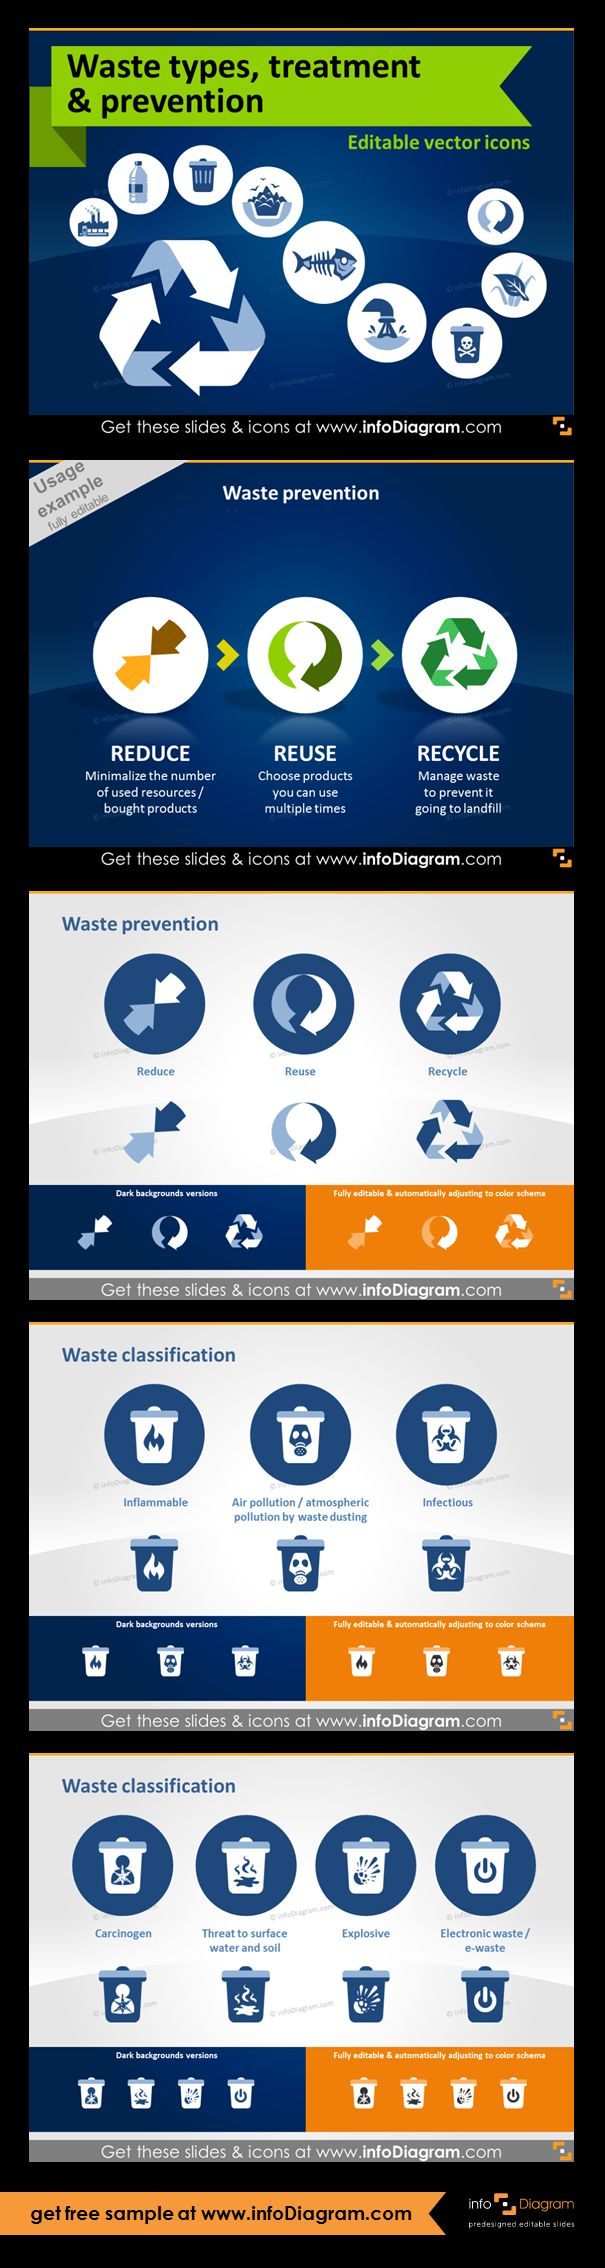 Waste and Ecology icons and visuals for waste industry presentations. Format: fully editable vector shapes in PowerPoint (color, filling, size - no quality loss when zoomed). Waste prevention diagram. Waste preventing and waste management: Reduce, Reuse, Recycle. Waste classification: Inflammable, Air pollution / atmospheric pollution by waste dusting, threat to surface water and soil, electronic waste / e-waste Types of hazards: Infectious, Carcinogen, Explosive.